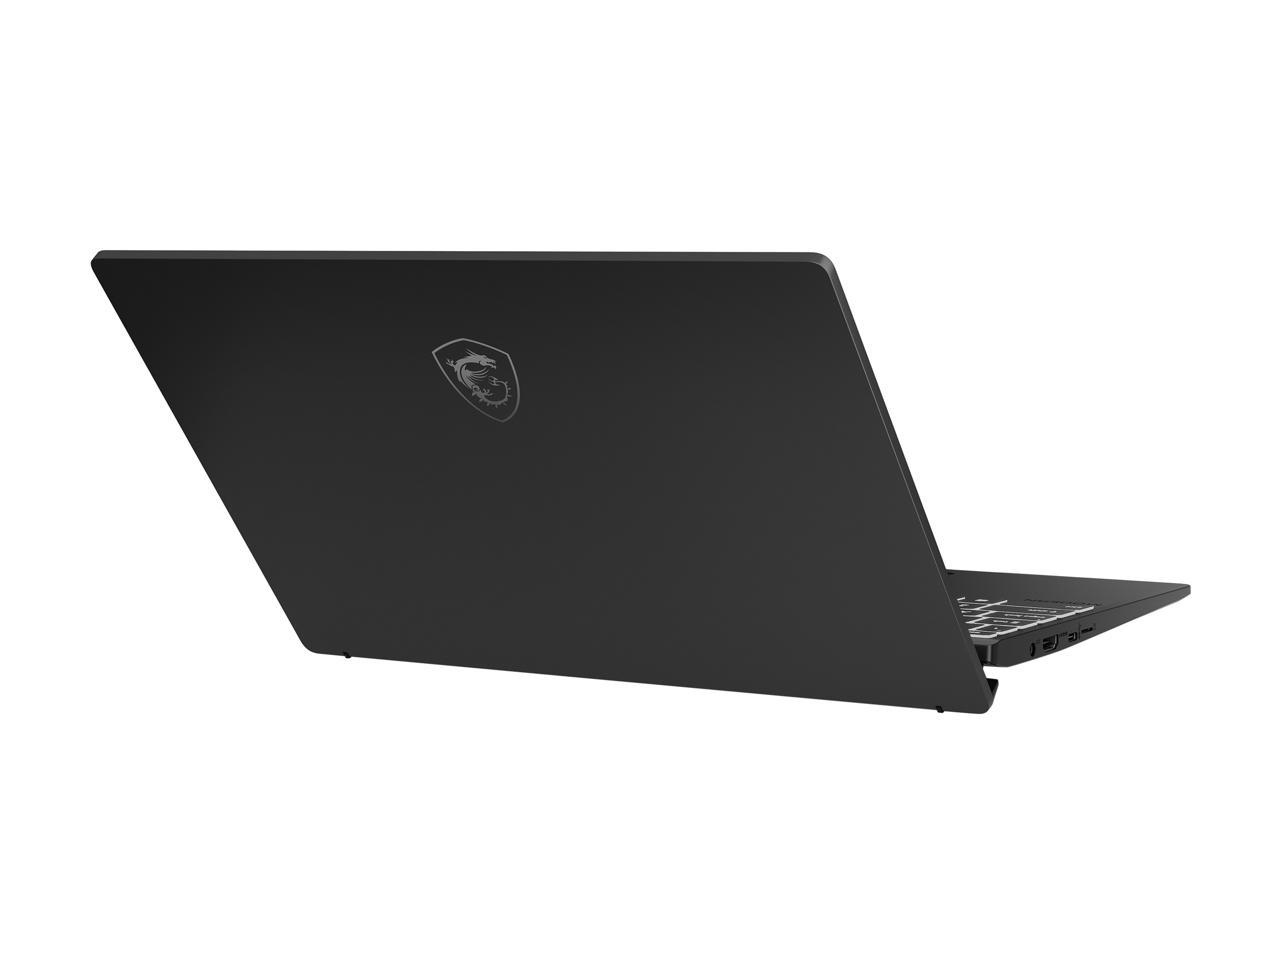 MSI Laptop Modern 14 B10RASW-078 Intel Core i7 10th Gen 10510U (1.80 GHz) 8 GB Memory 512 GB SSD NVIDIA GeForce MX330 14.0""